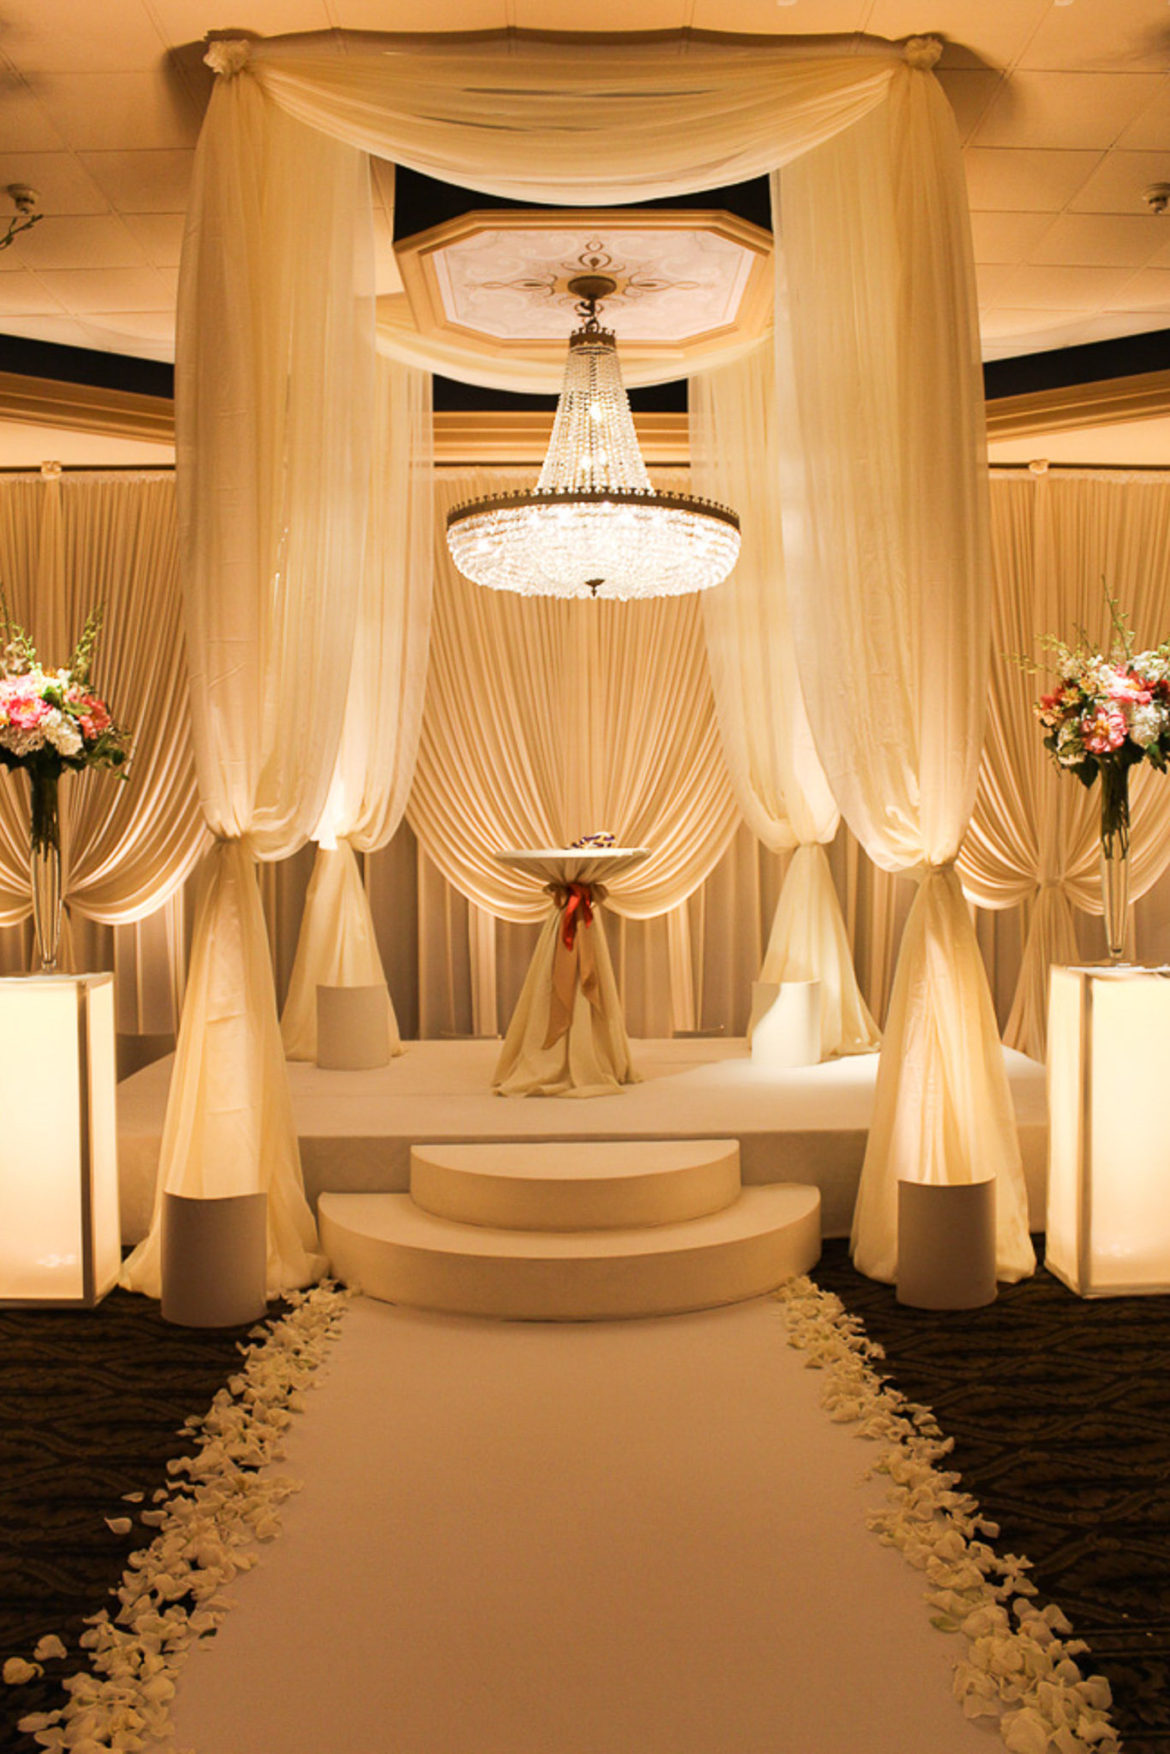 Elegant_Event_Lighting_Chicago_The_Carlisle_Wedding_Ivory_Bridal_Canopy_Chuppah_Backdrop_Flower_Pedestals_Stage_Cover_Moon_Steps_Aisle_Runner.